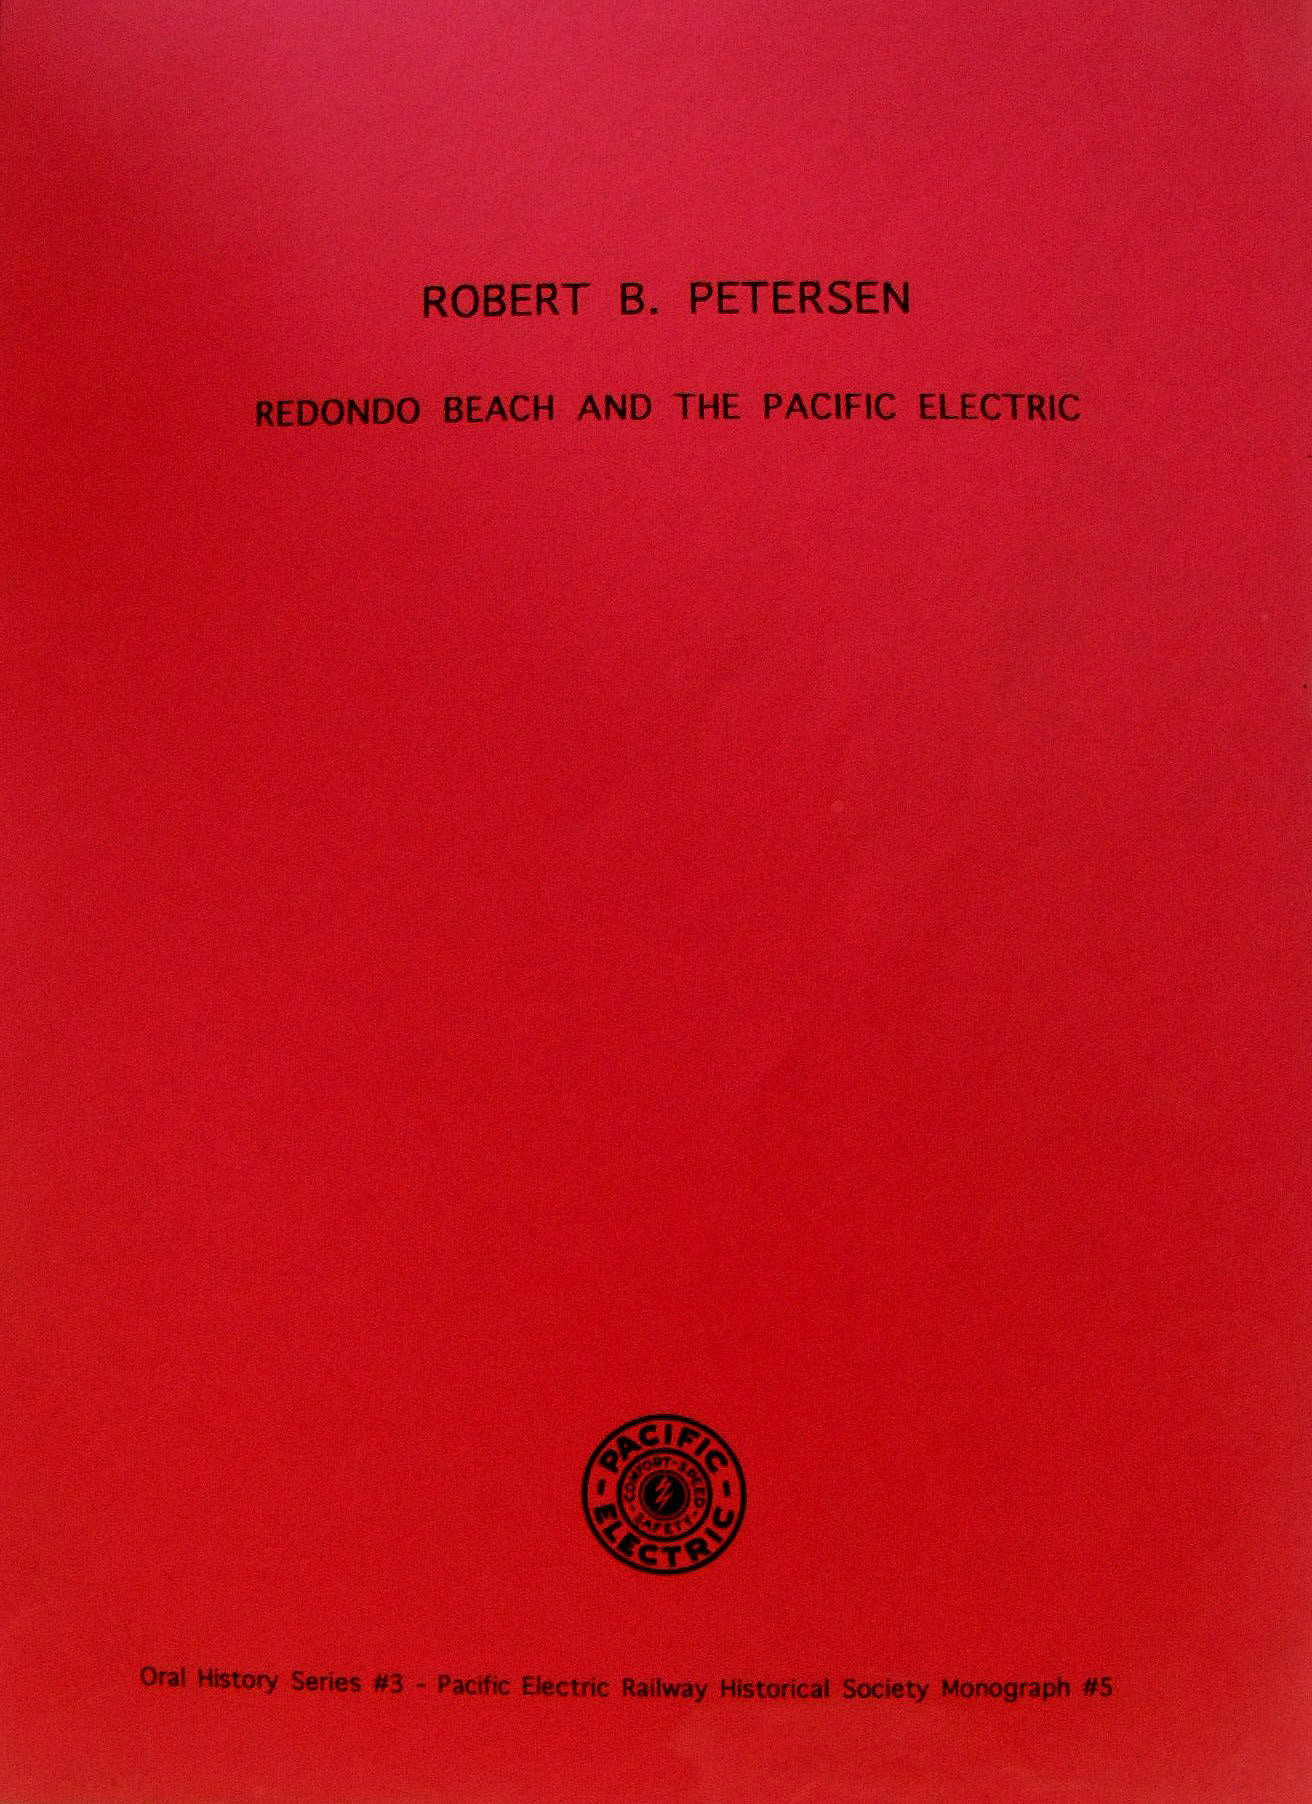 Monograph #5: Robert B. Petersen: Redondo Beach and the Pacific Electric